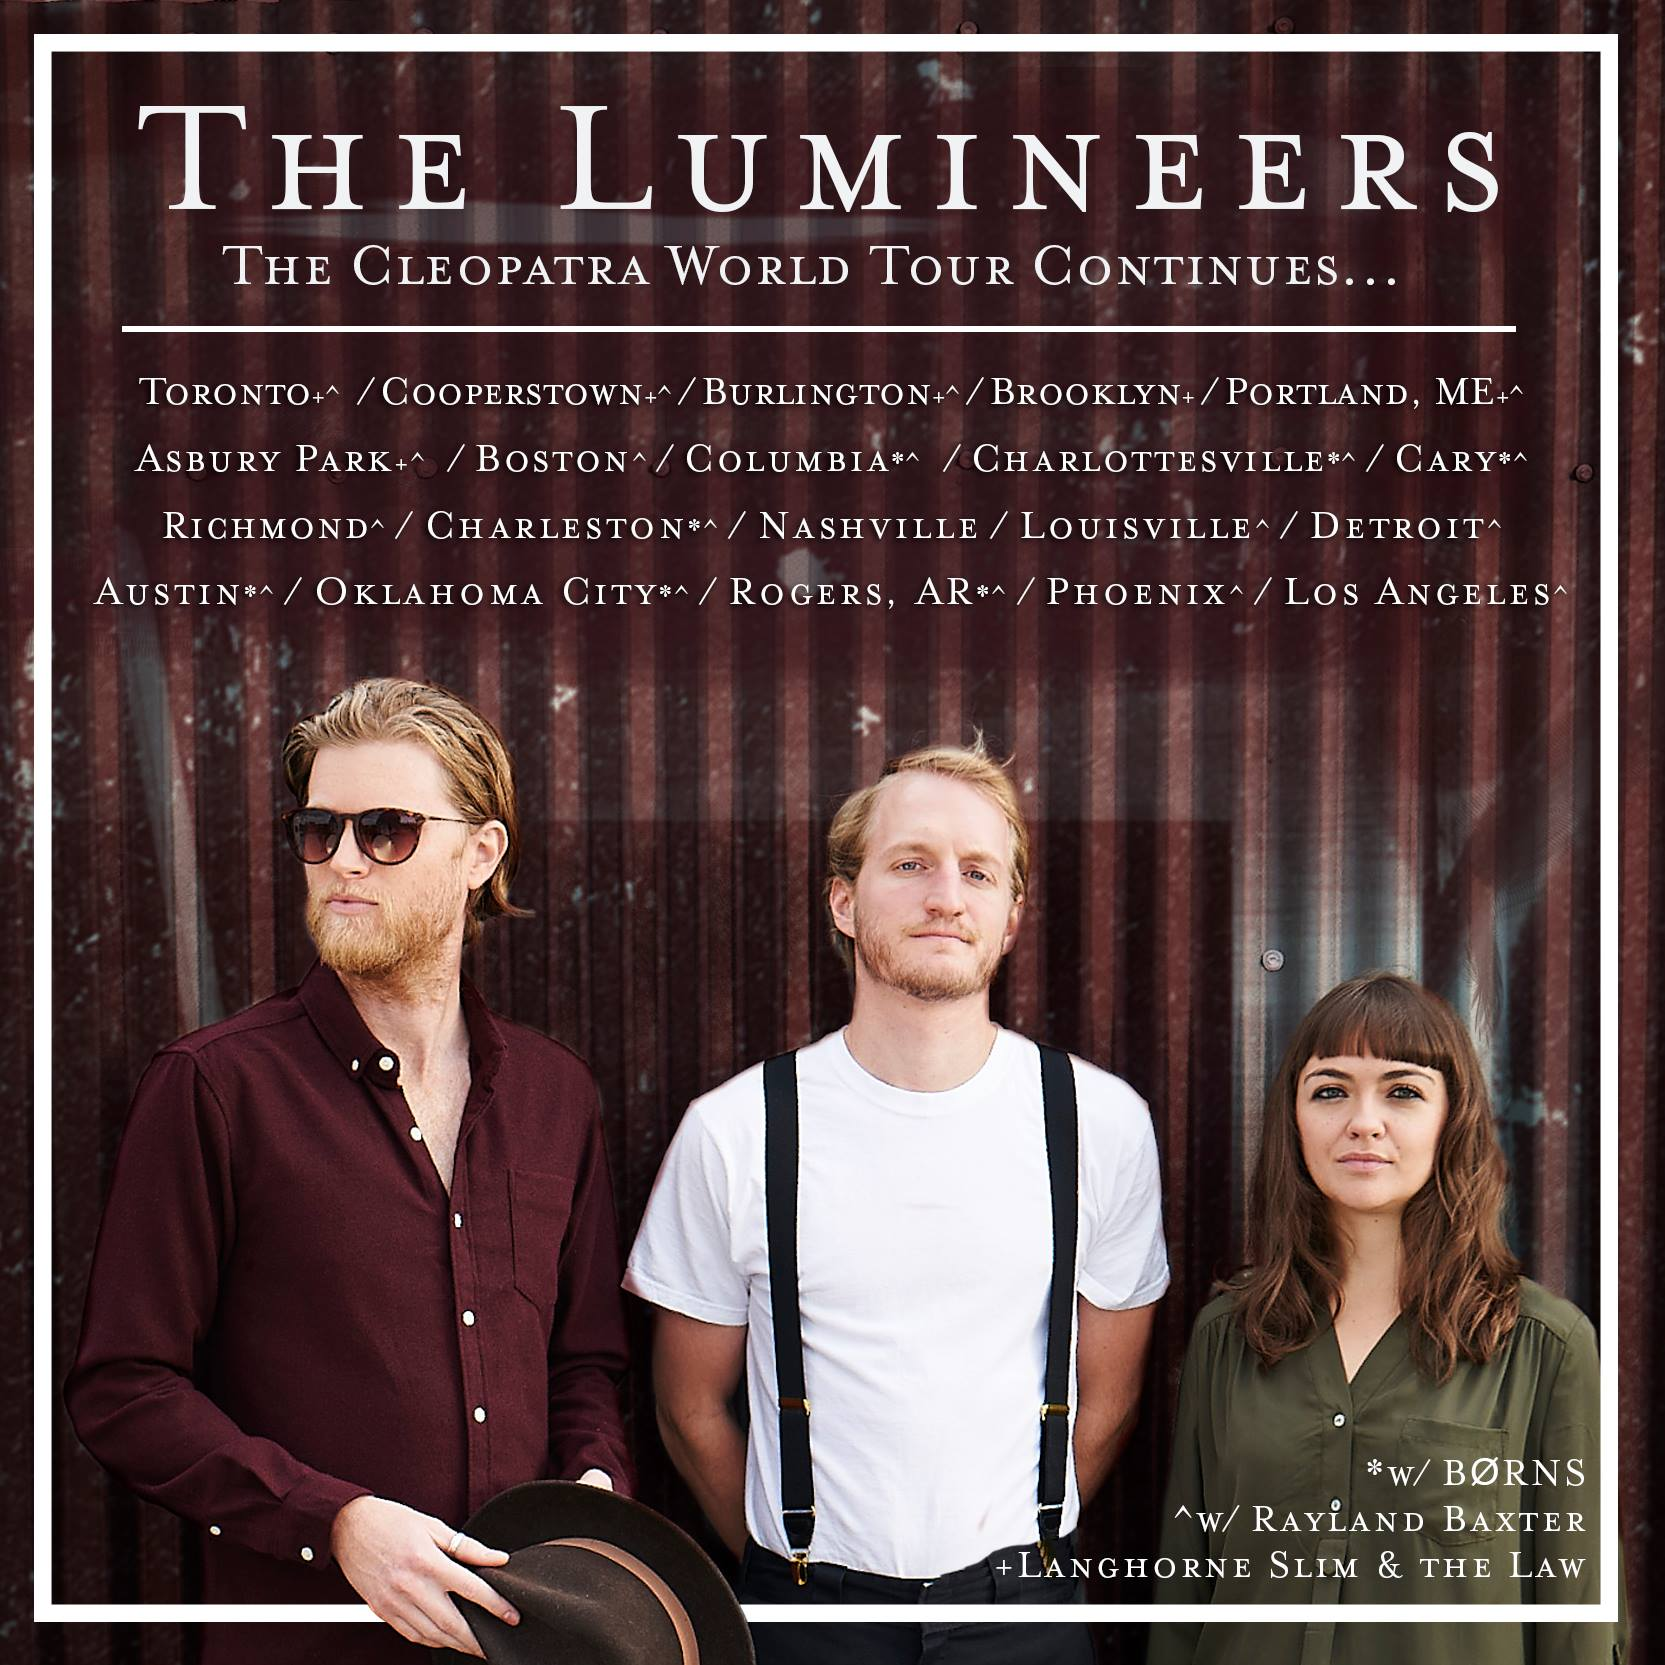 image for article The Lumineers Add 2016 Dates to the Cleopatra World Tour: Ticket Presale Code Info